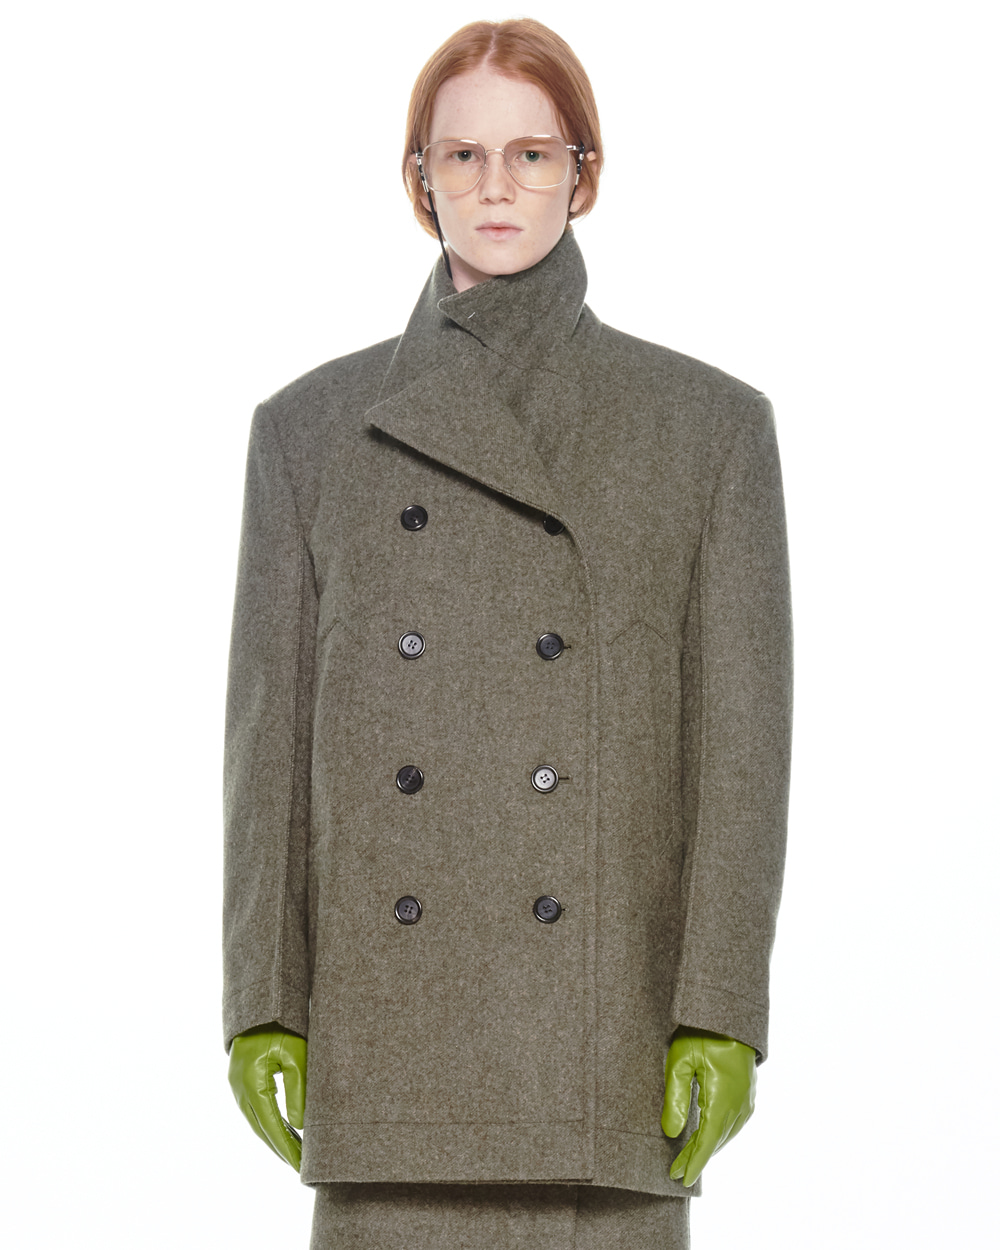 FW20 MILITARY POCKET PEACOAT